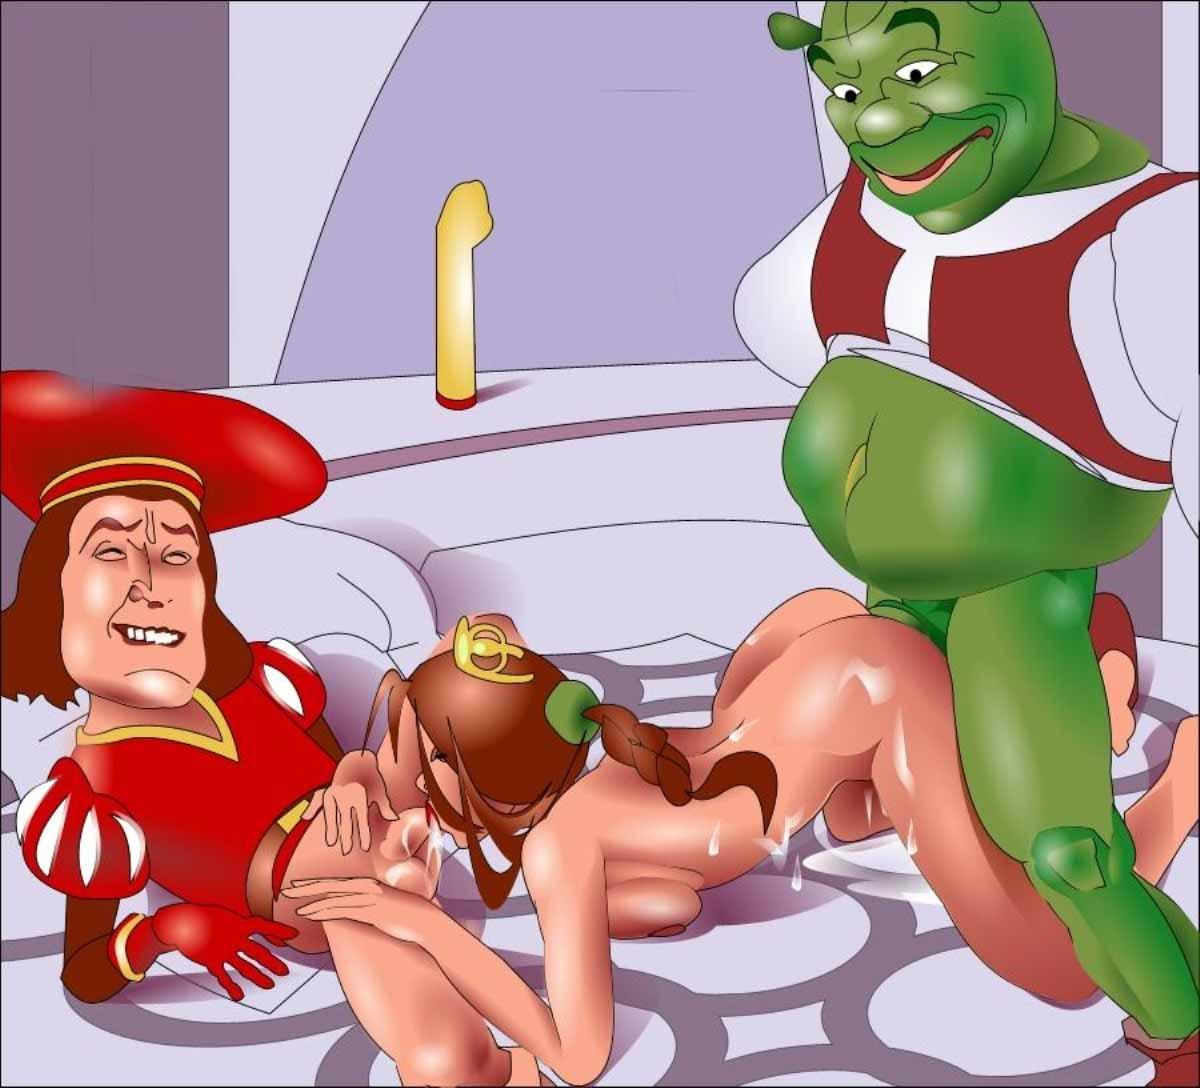 Shrek sex porn videos download free adult pic